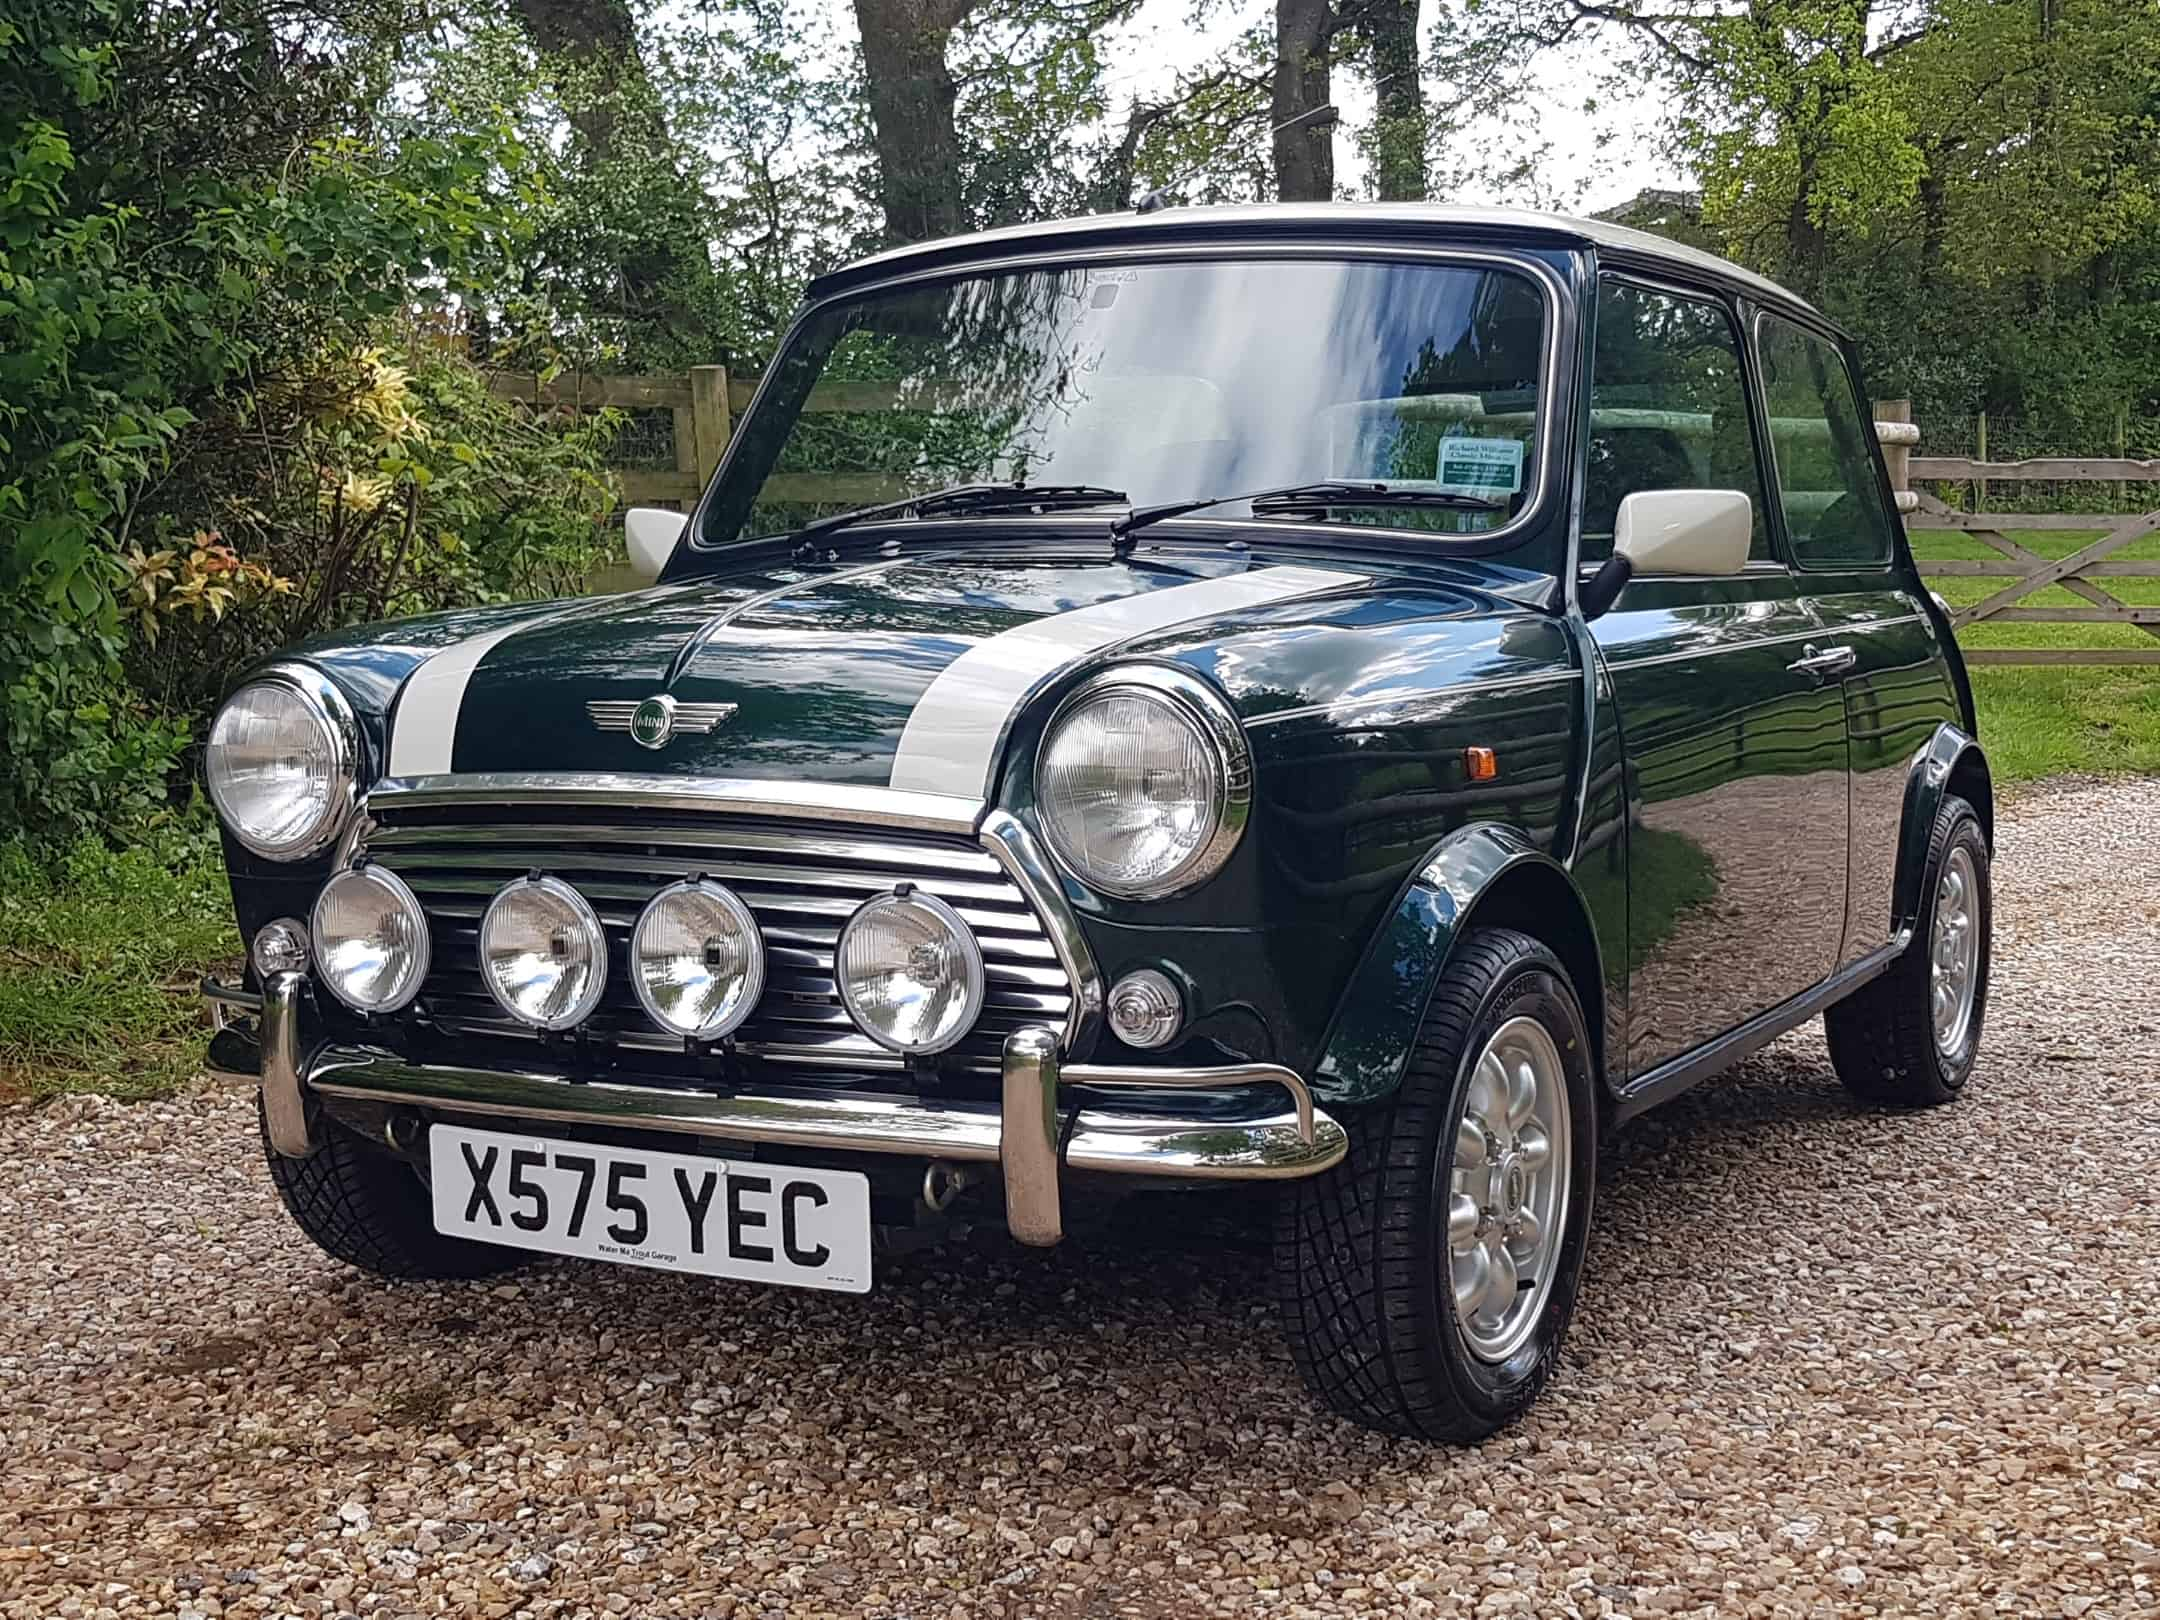 ** NOW SOLD ** 2001 Mini Cooper 'Last Edition' On Just 75 Miles From New!